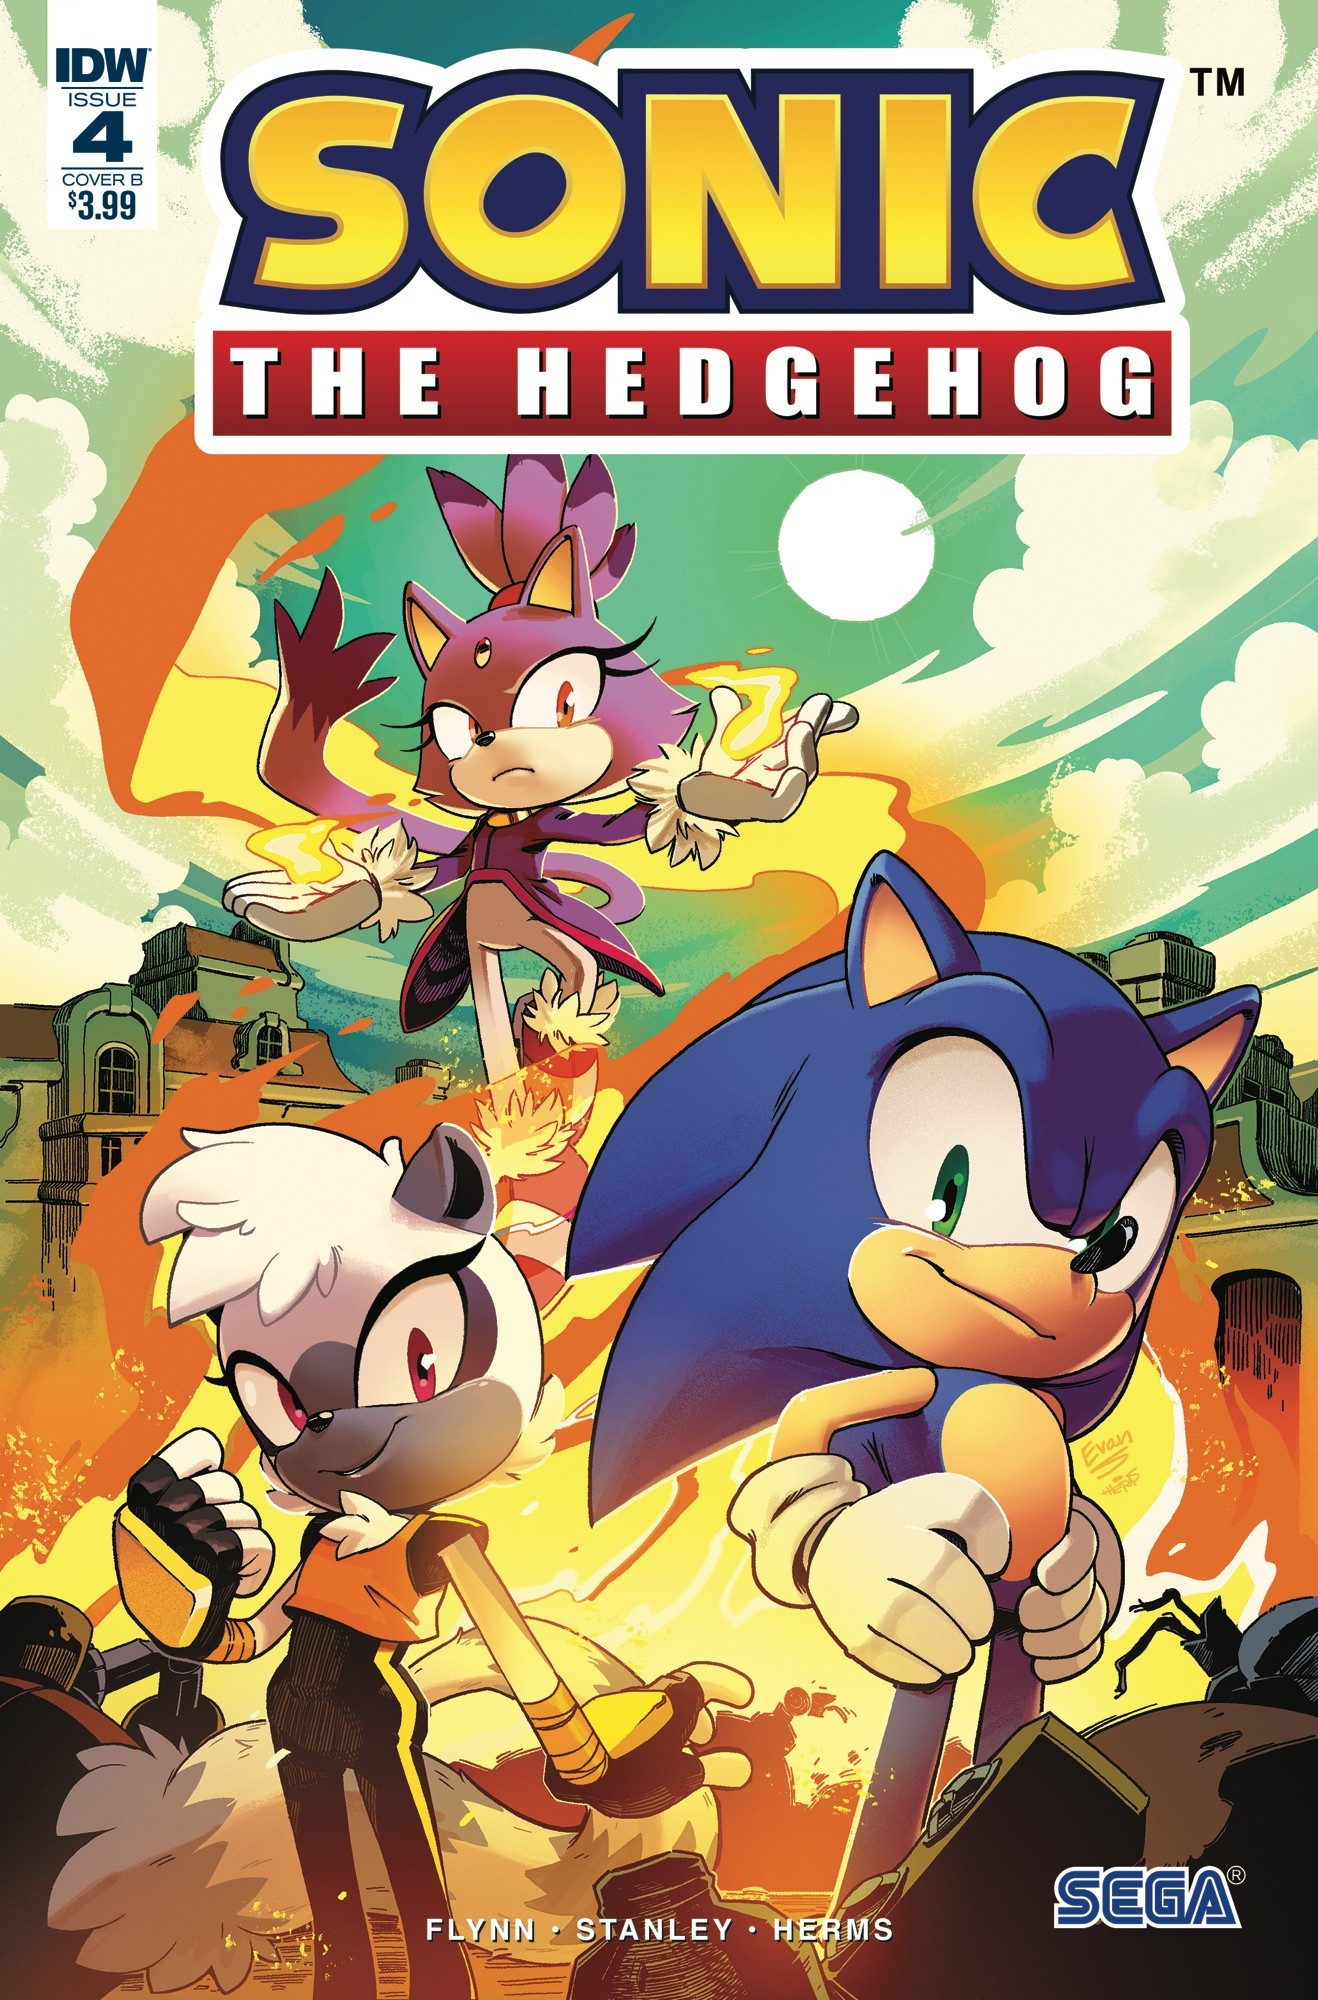 Idw Sonic The Hedgehog Issue 4 Sonic News Network Fandom